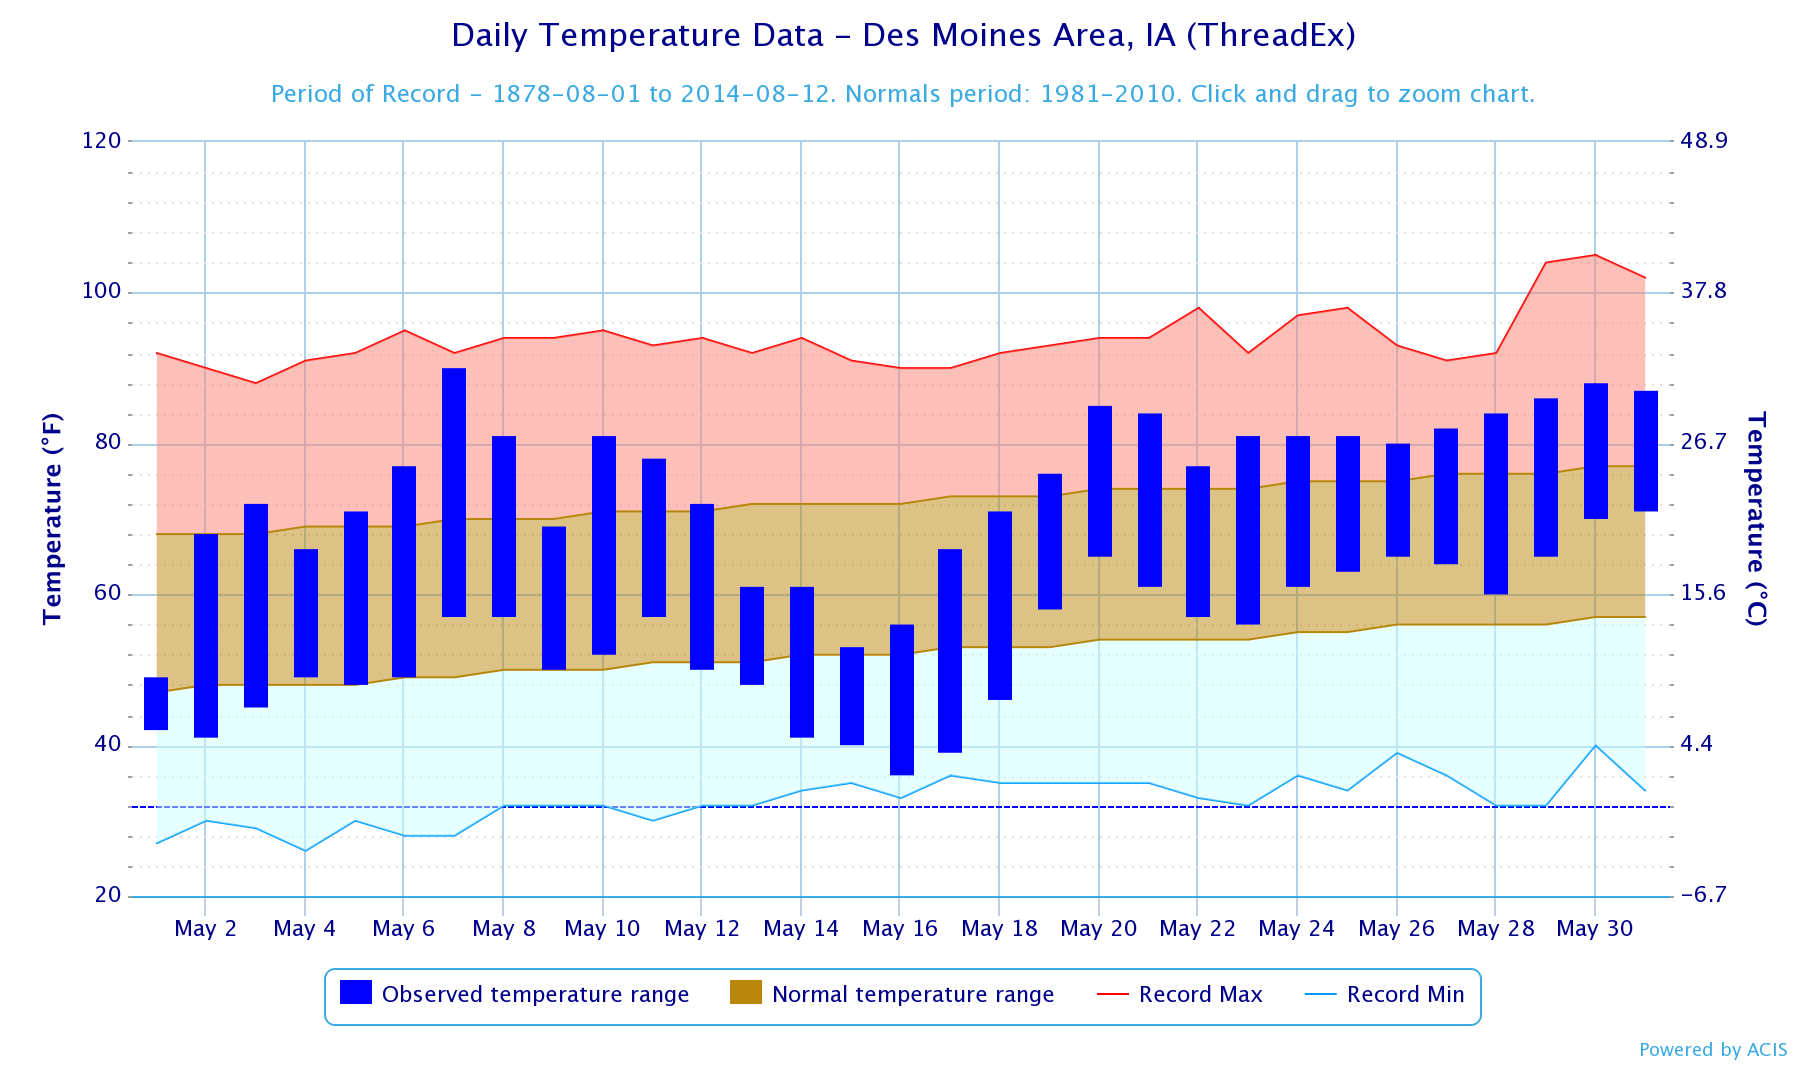 Figure 2: Daily Temperature Trend for Des Moines International Airport for the month of May 2014. The temperature trend during the first half of the month shows sharp contrasts before leveling out by the end of the month.